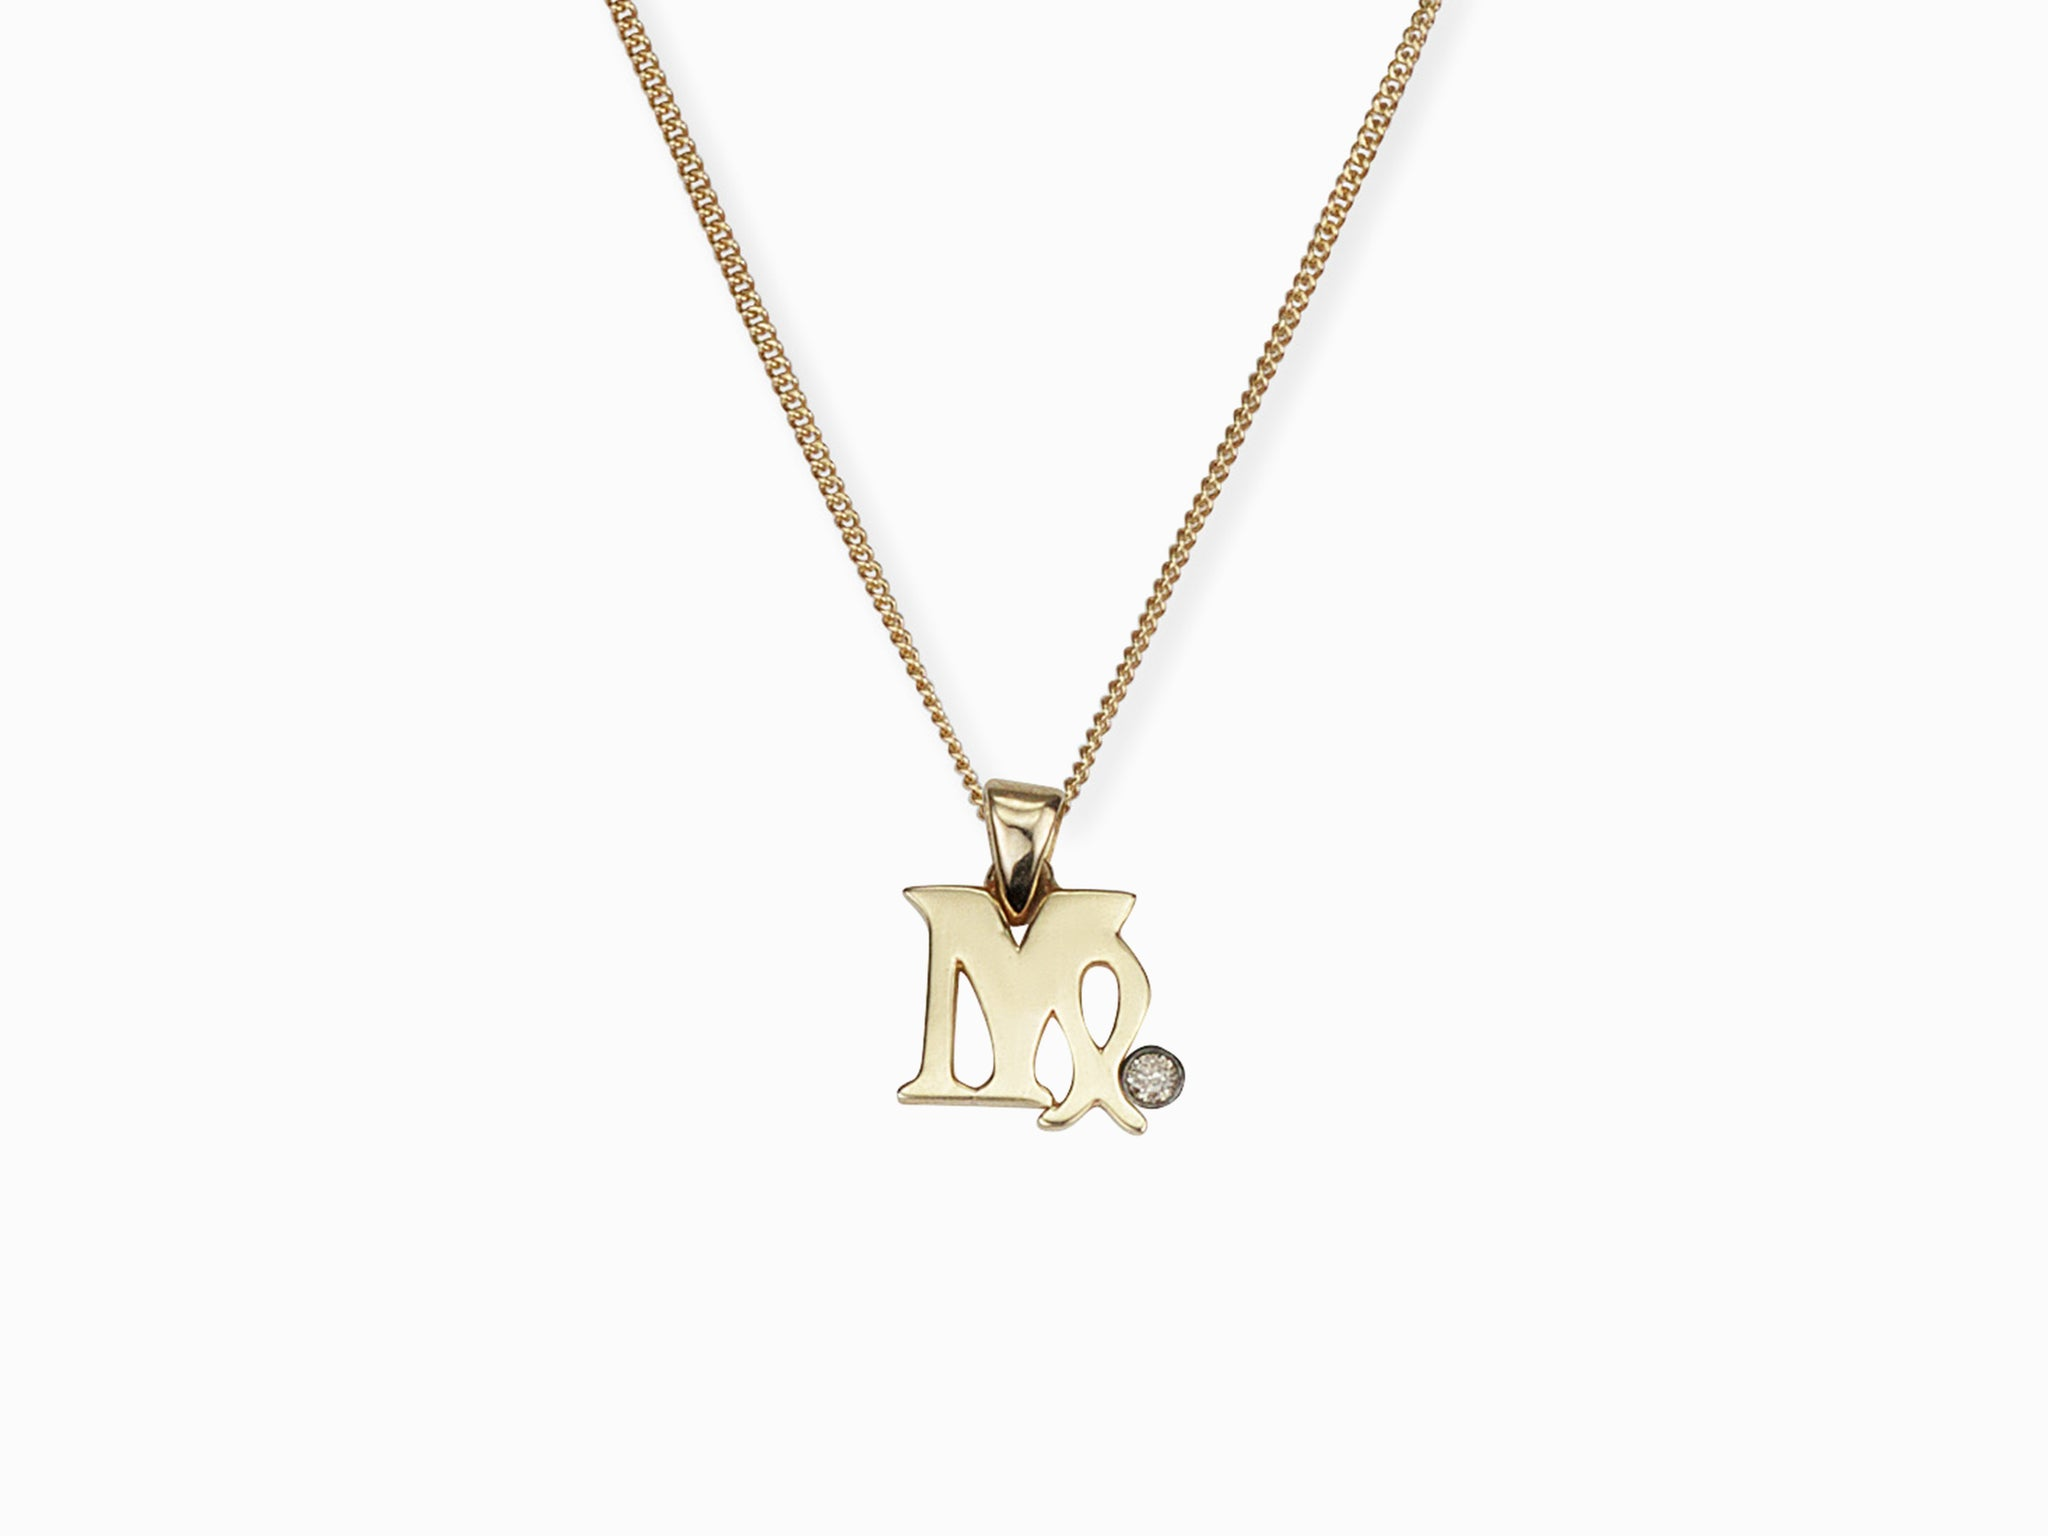 virgo rose necklaces jewellery pendants necklace gold georgini pendant